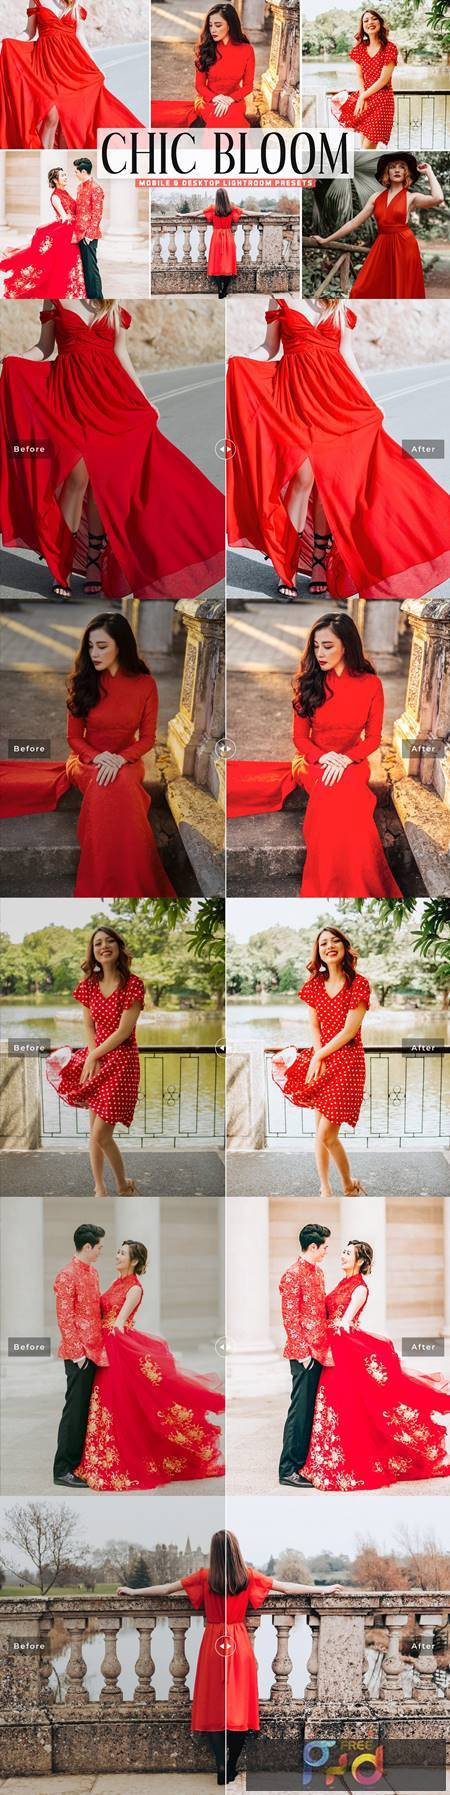 Chic Bloom Pro Lightroom Presets 5423702 1